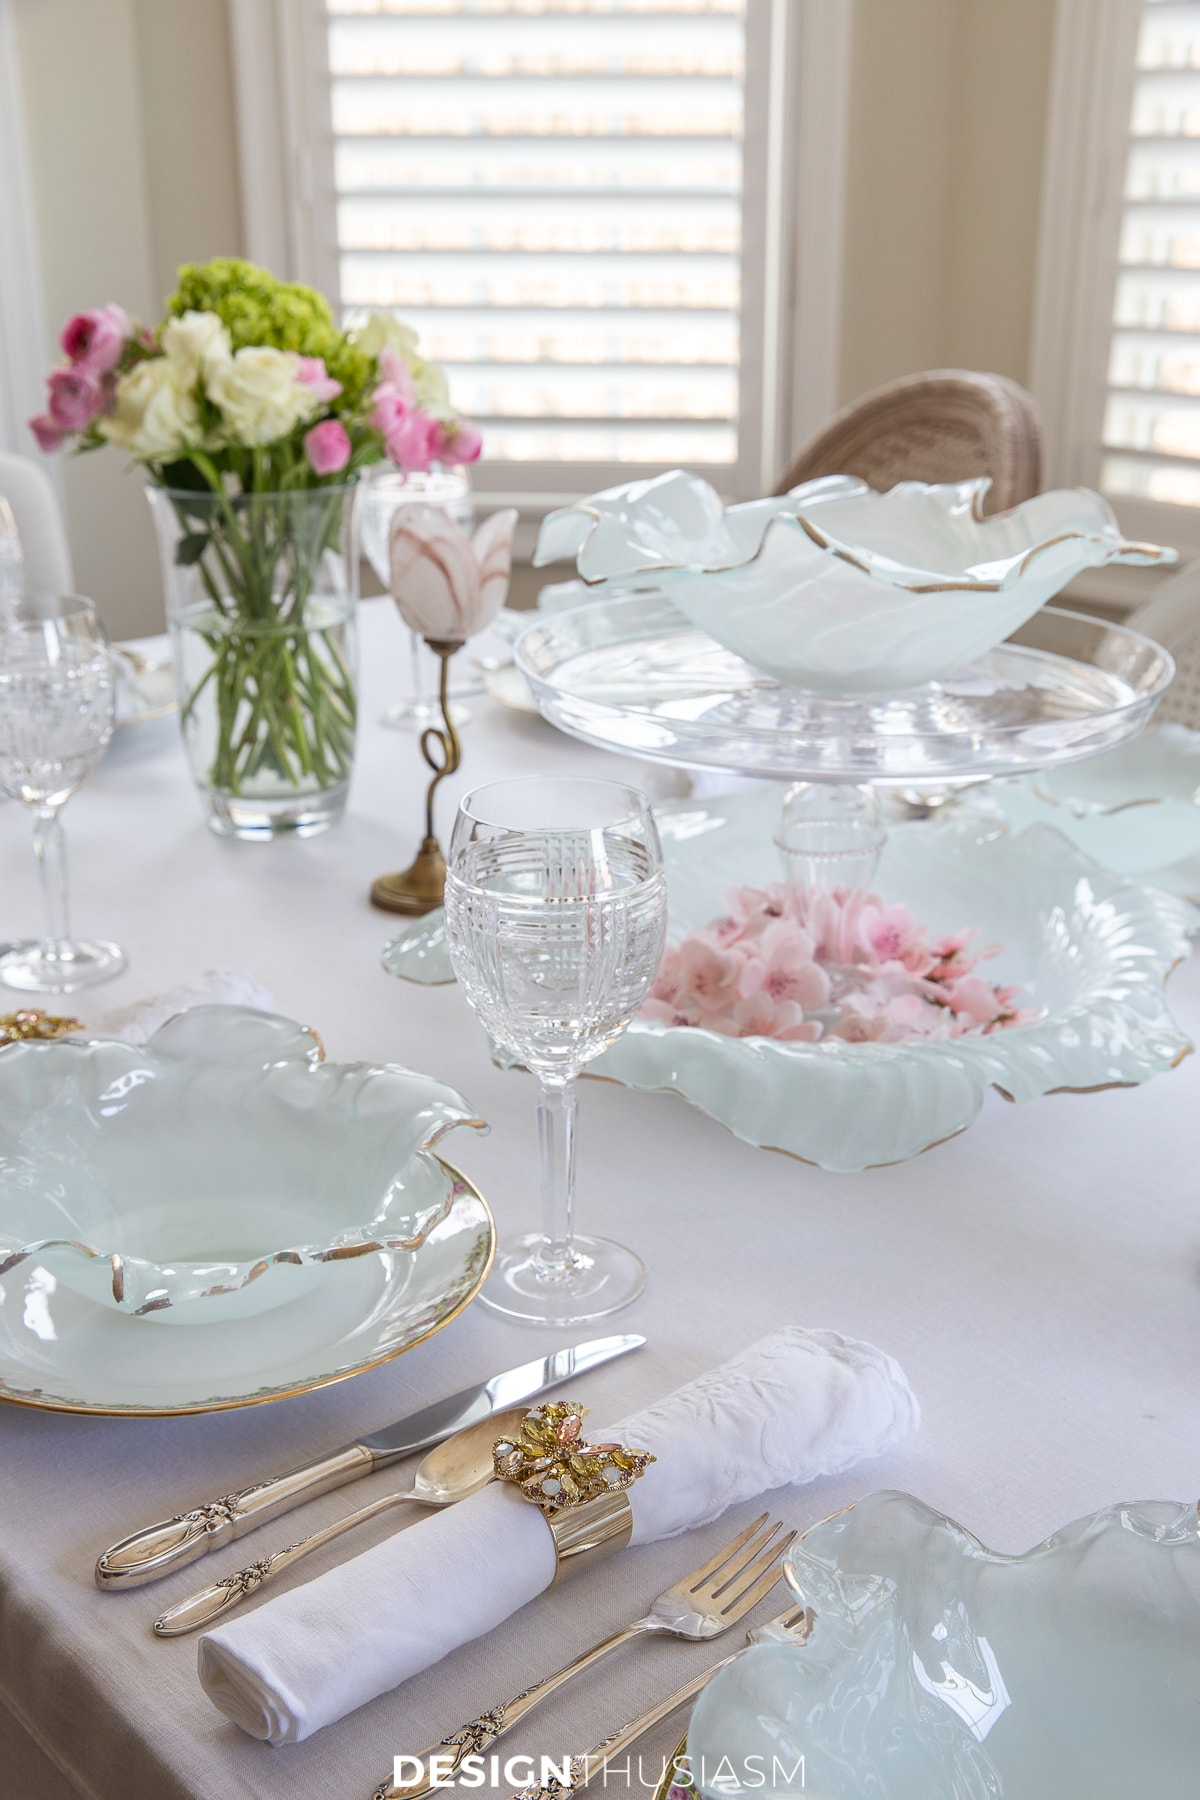 Poppy bowl Easter tablescape